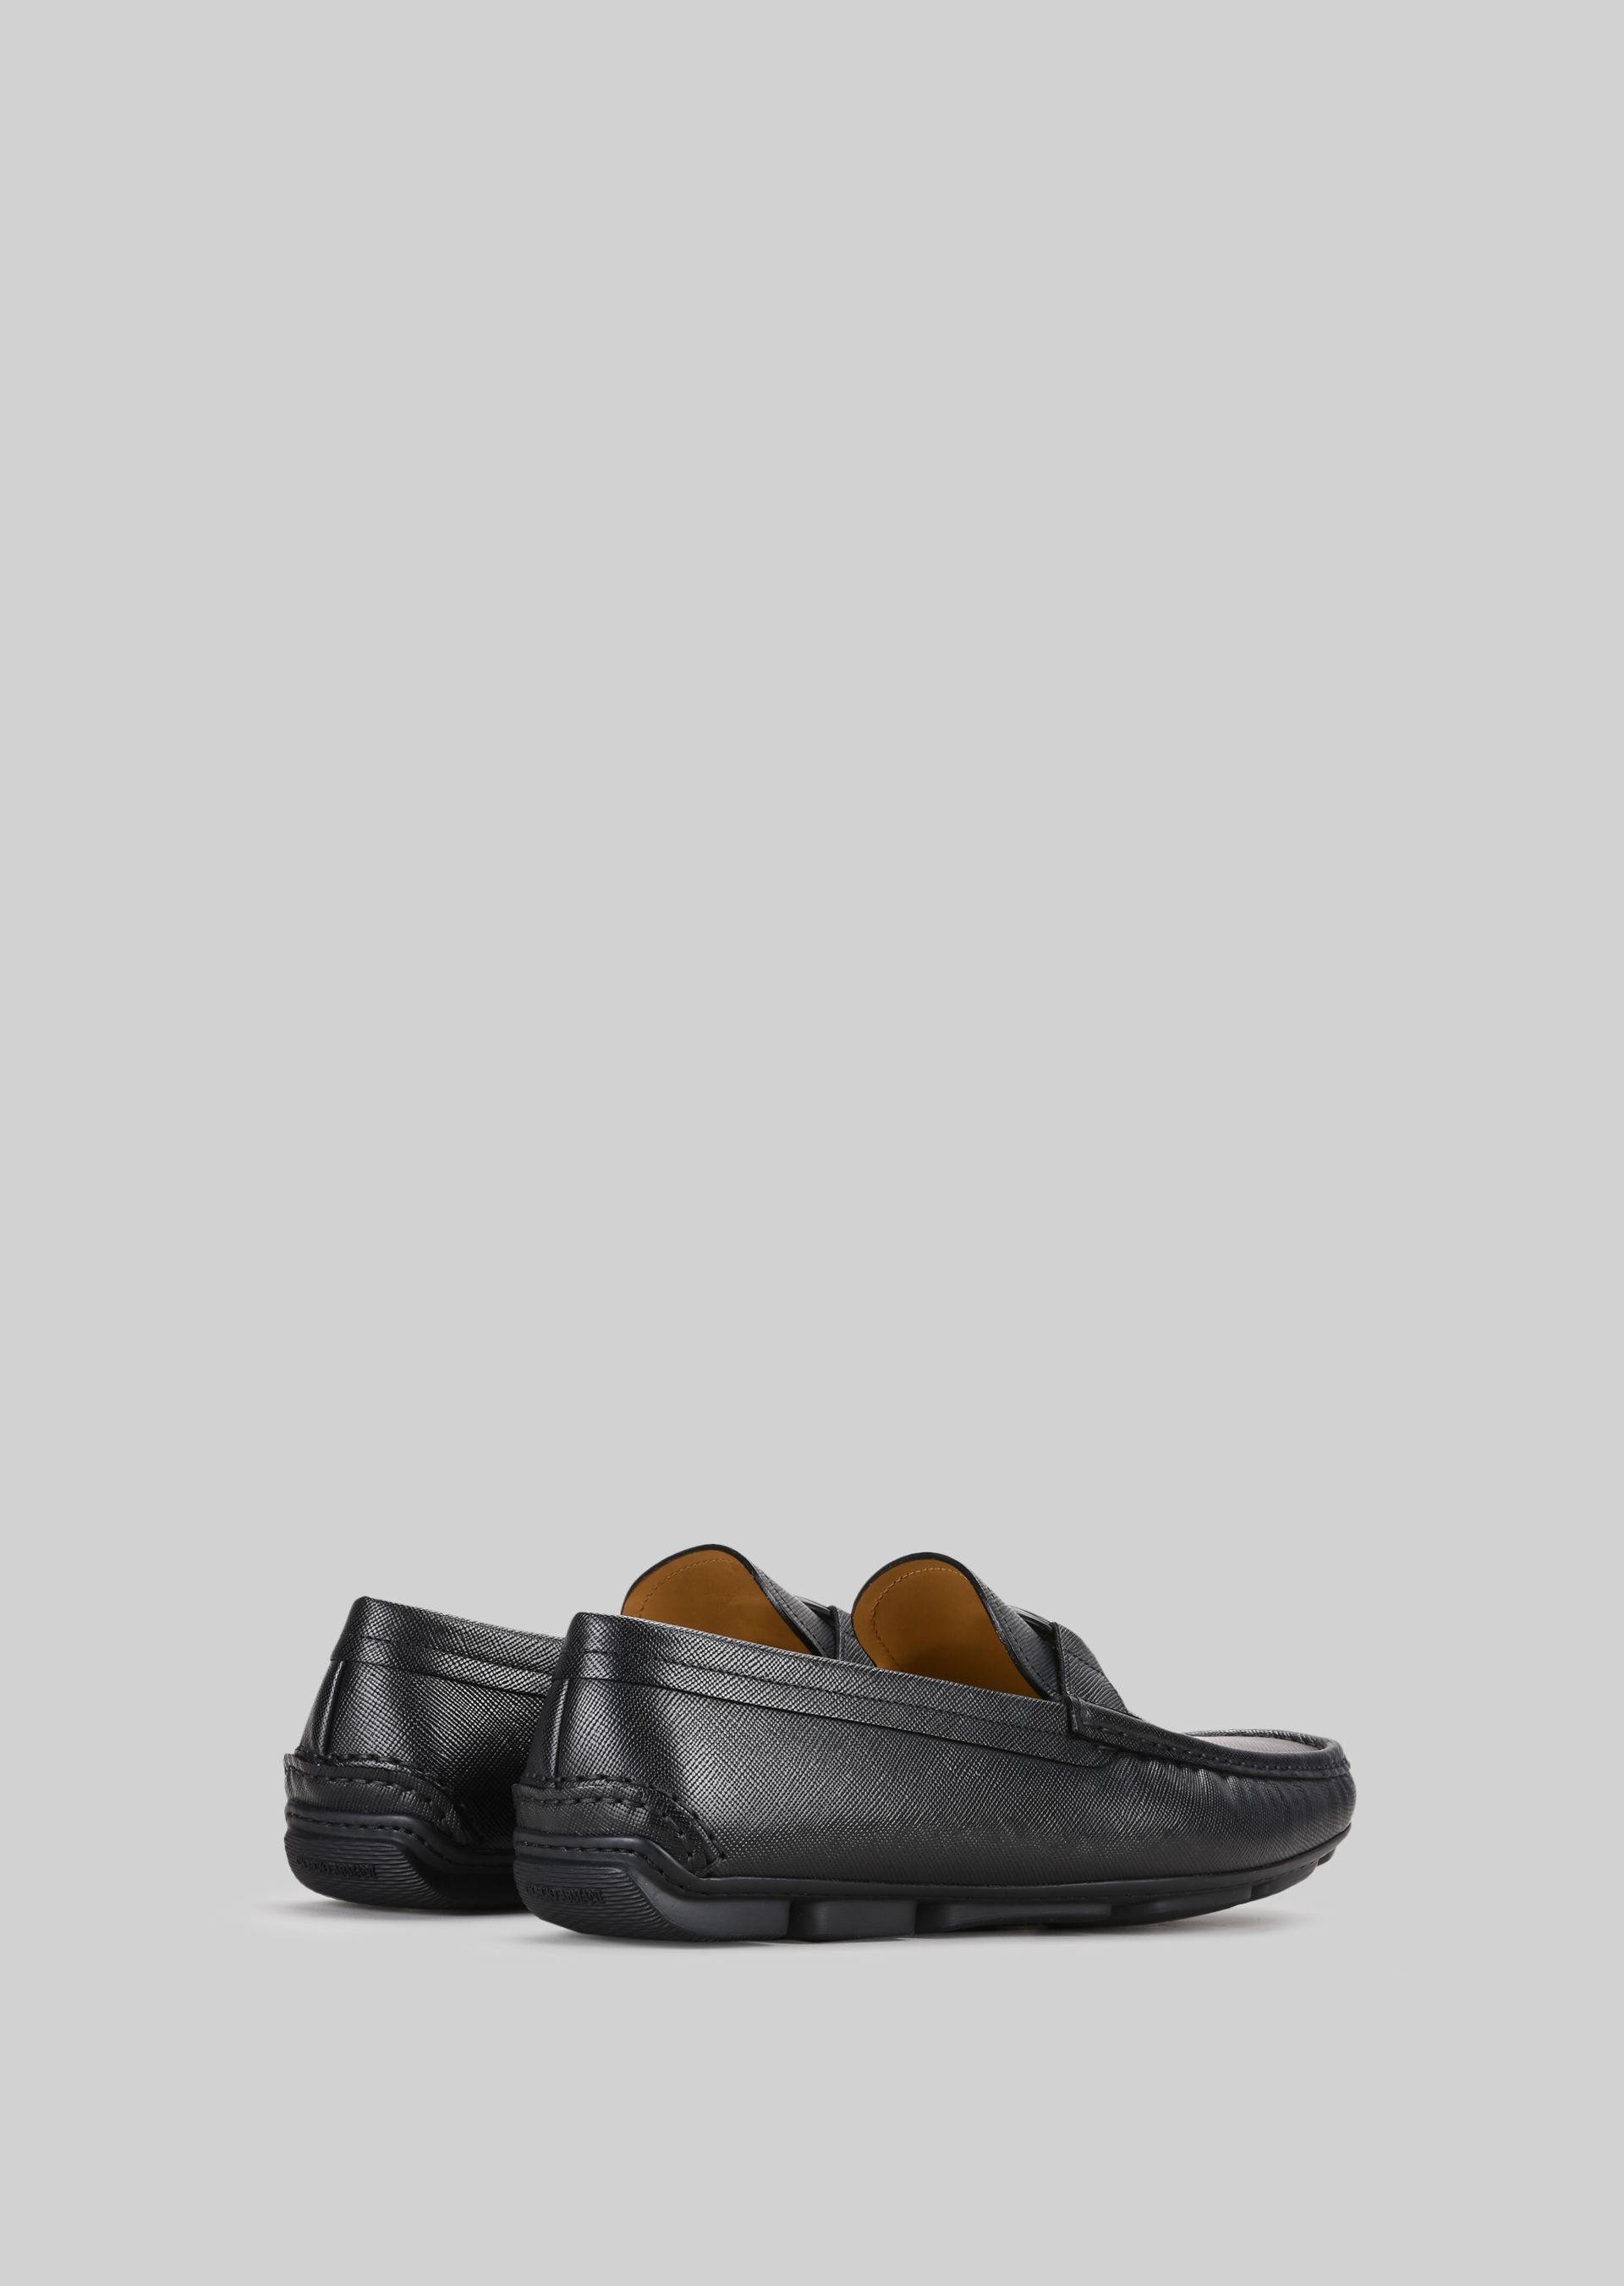 GIORGIO ARMANI LEATHER DRIVING LOAFERS Driving Shoes U d